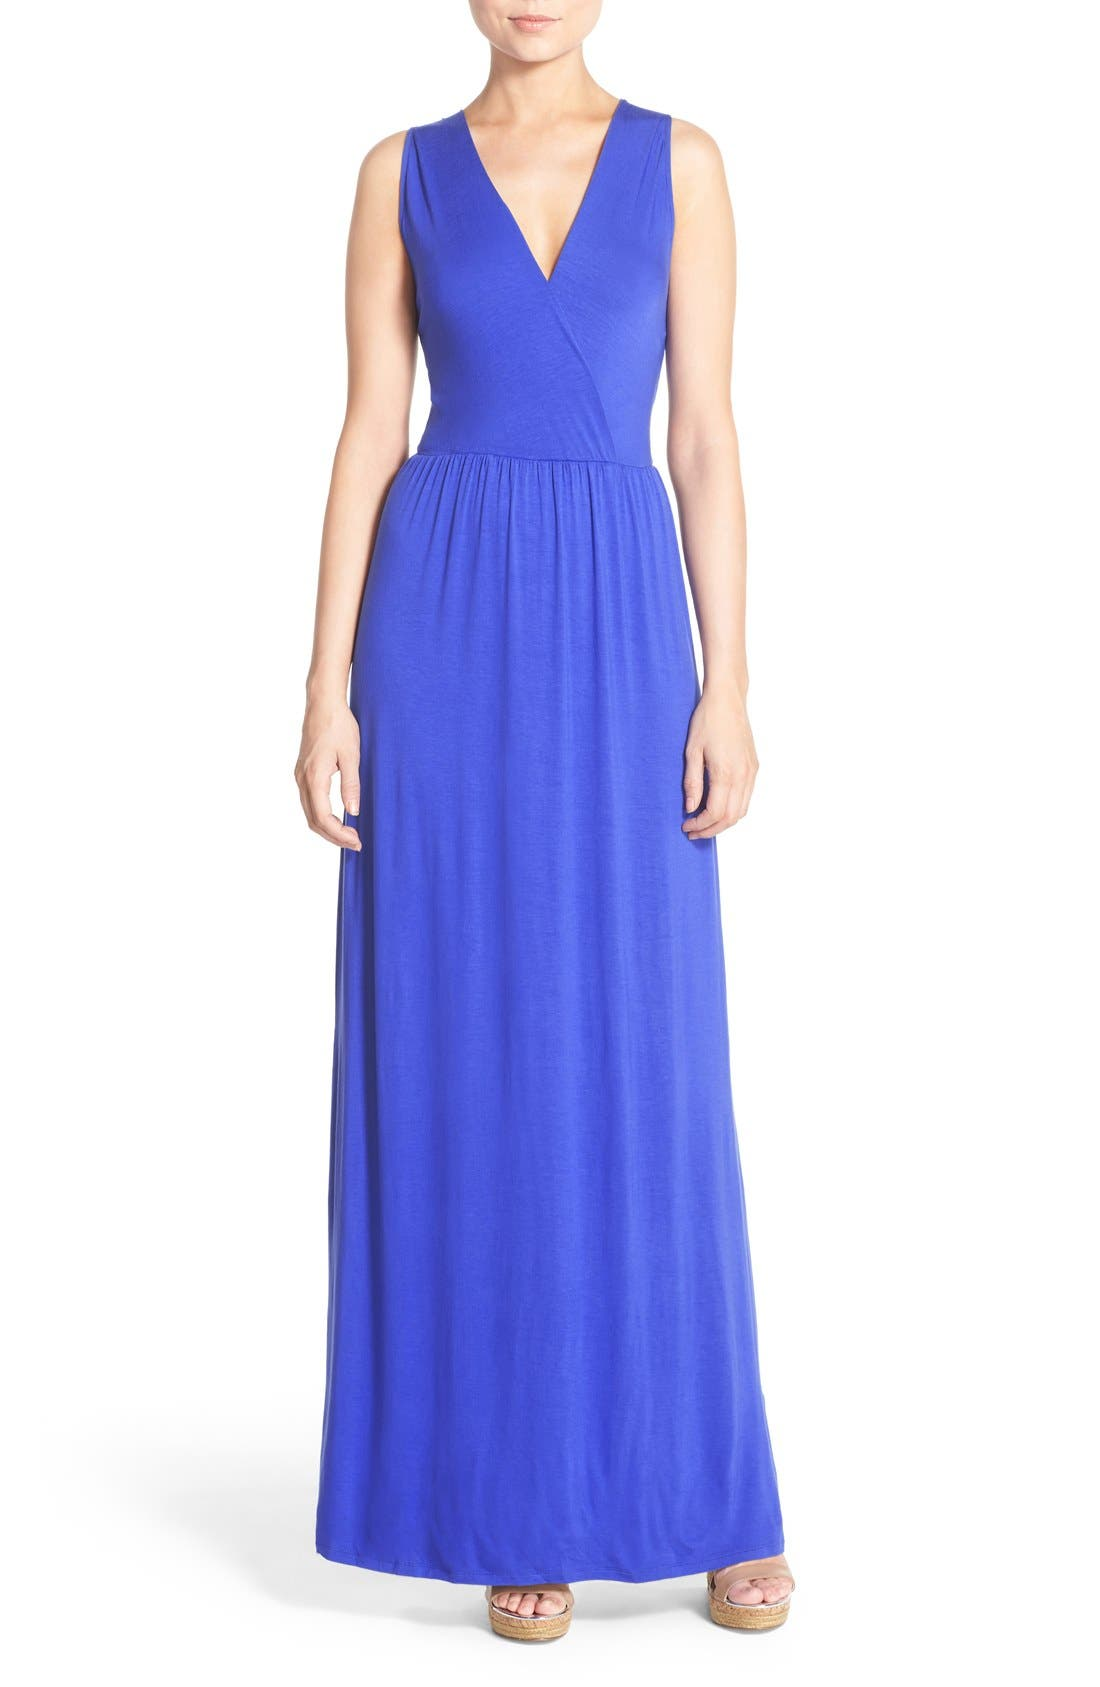 Main Image - Felicity & Coco Jersey Strappy Back Maxi Dress (Regular & Petite) (Nordstrom Exclusive)